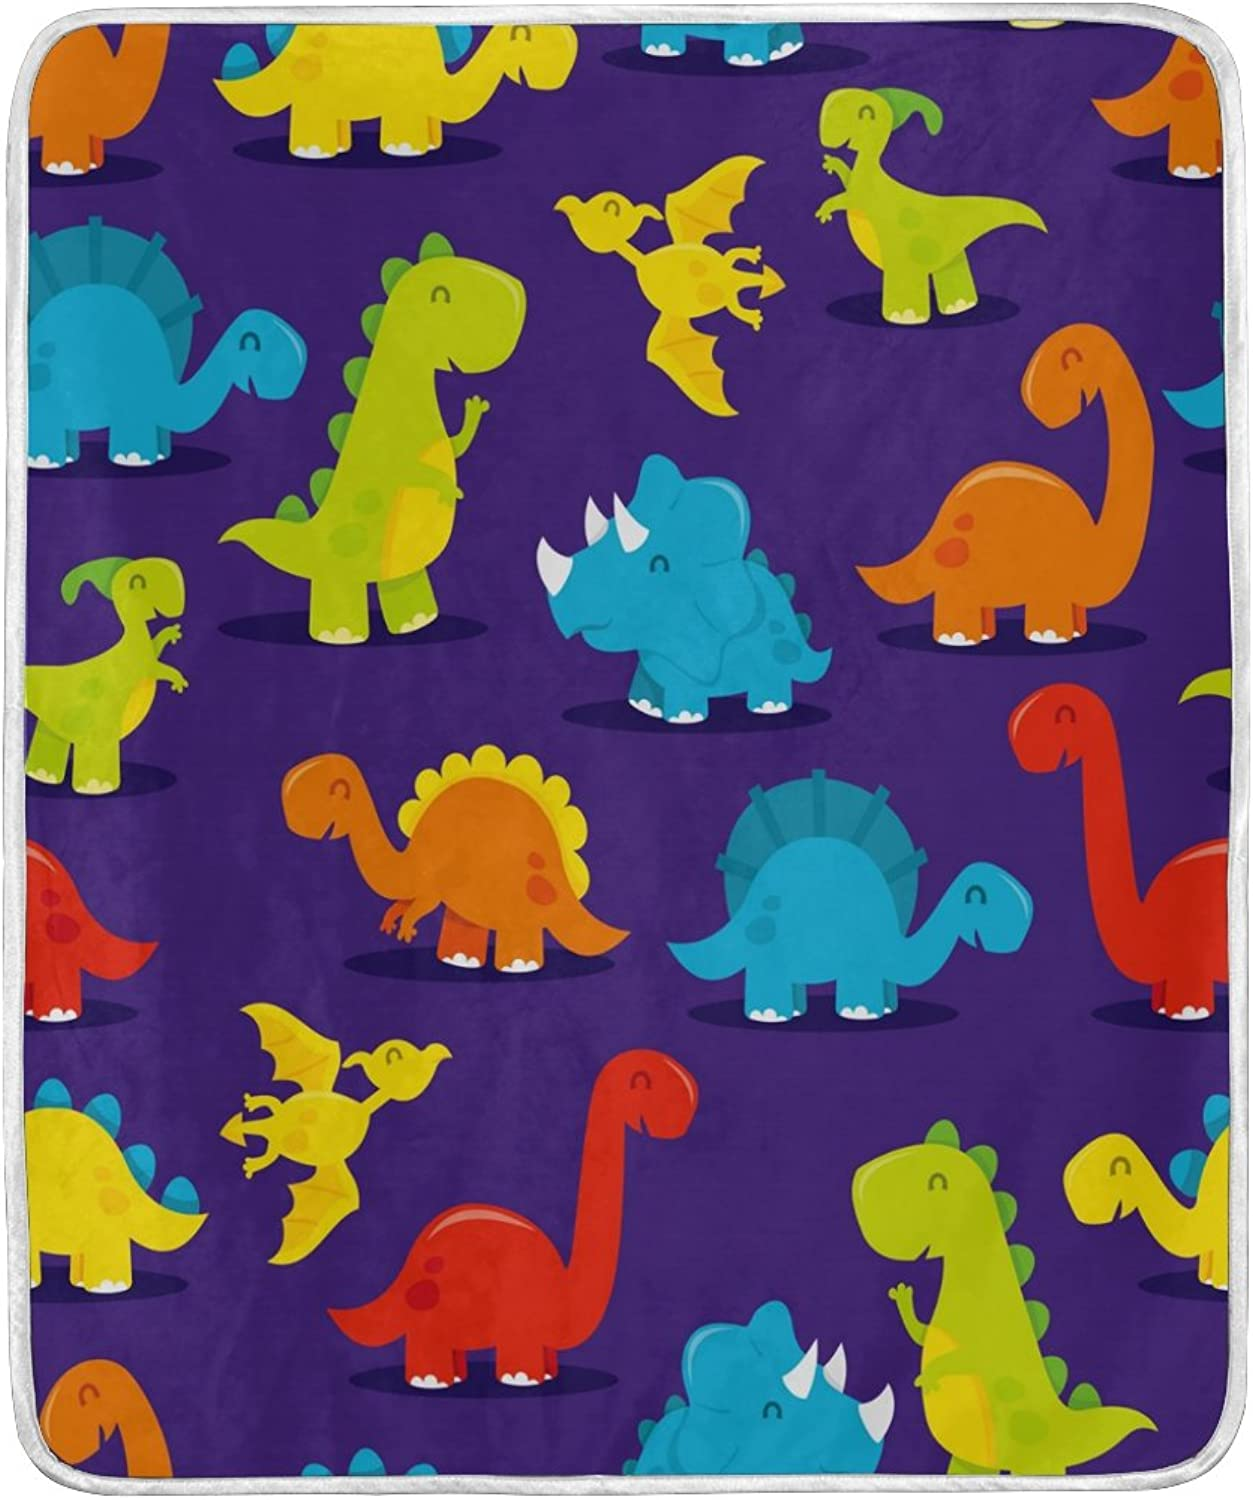 ALAZA Home Decor colorful Cartoon Dinosaur Blanket Soft Warm Blankets for Bed Couch Sofa Lightweight Travelling Camping 60 x 50 inch Throw Size for Kids Boys Women